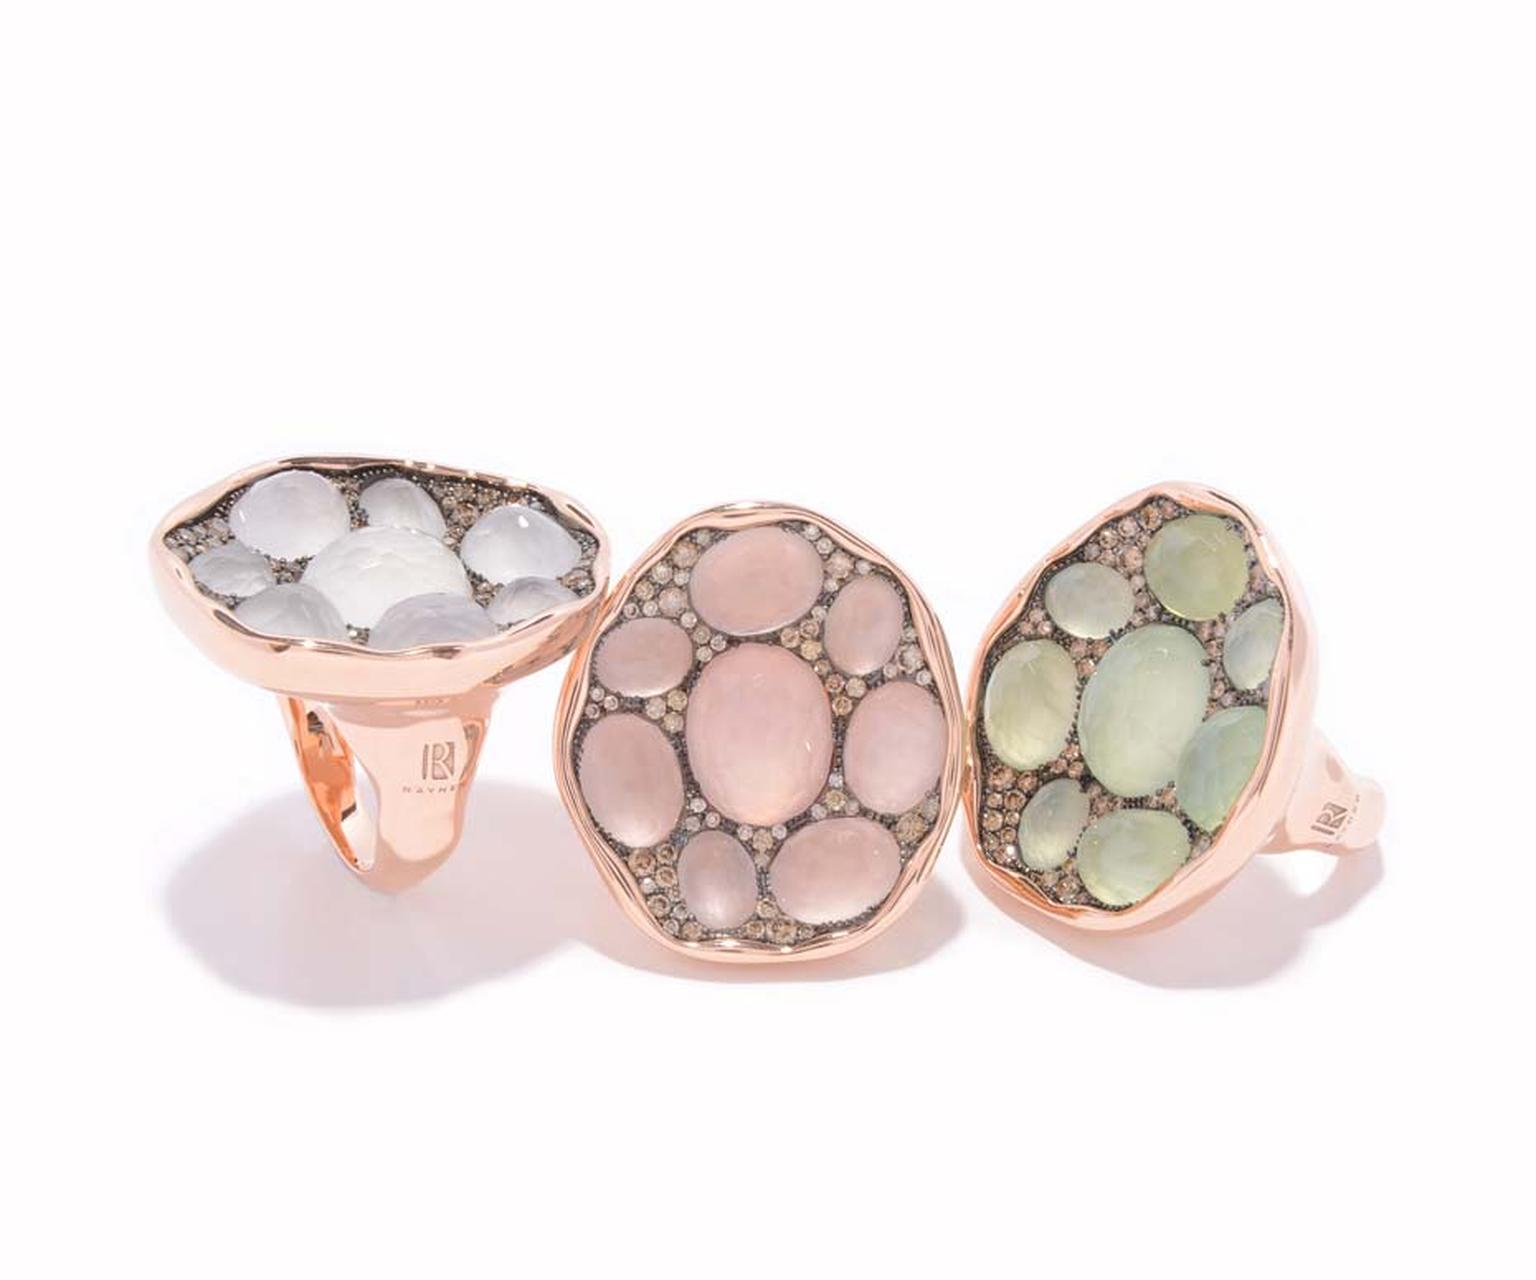 Rodney Rayner red gold rings featuring, from left to right, 8 white quartz, 8 rose quartz and 8 prehnites surrounded by a sprinkling of diamonds.